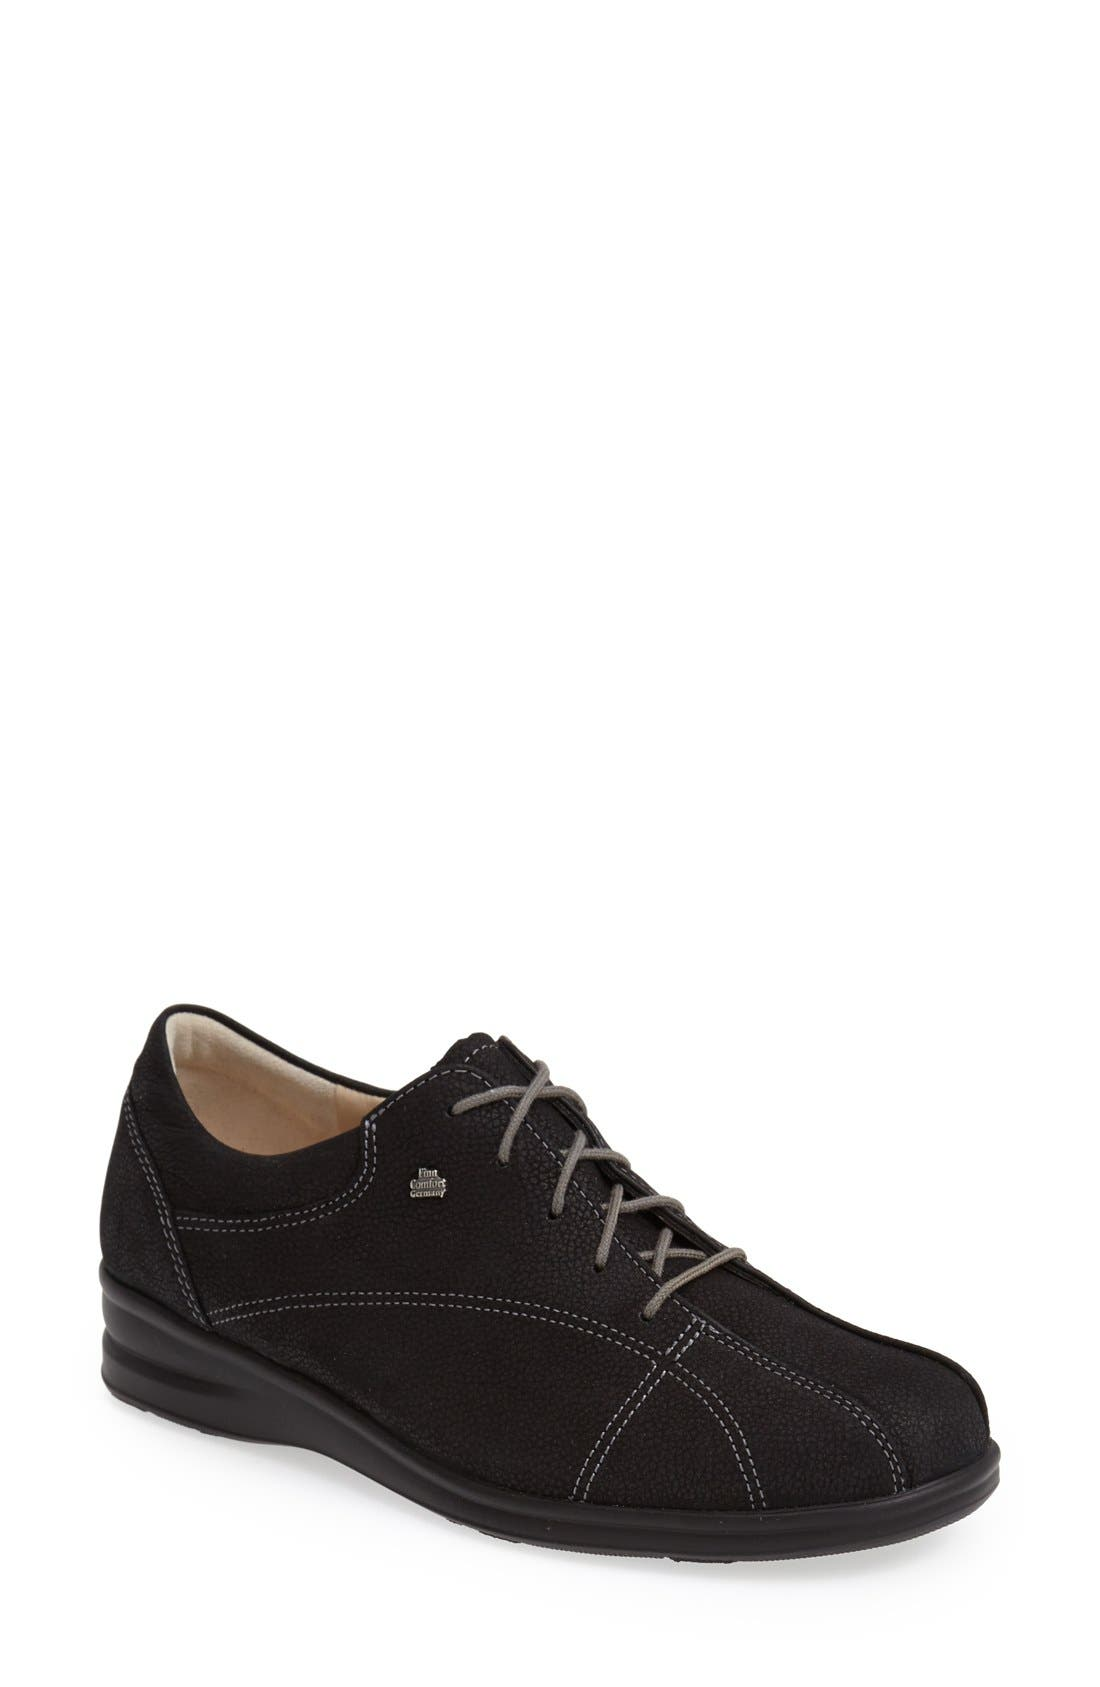 'Ariano' Leather Sneaker,                             Main thumbnail 1, color,                             Black